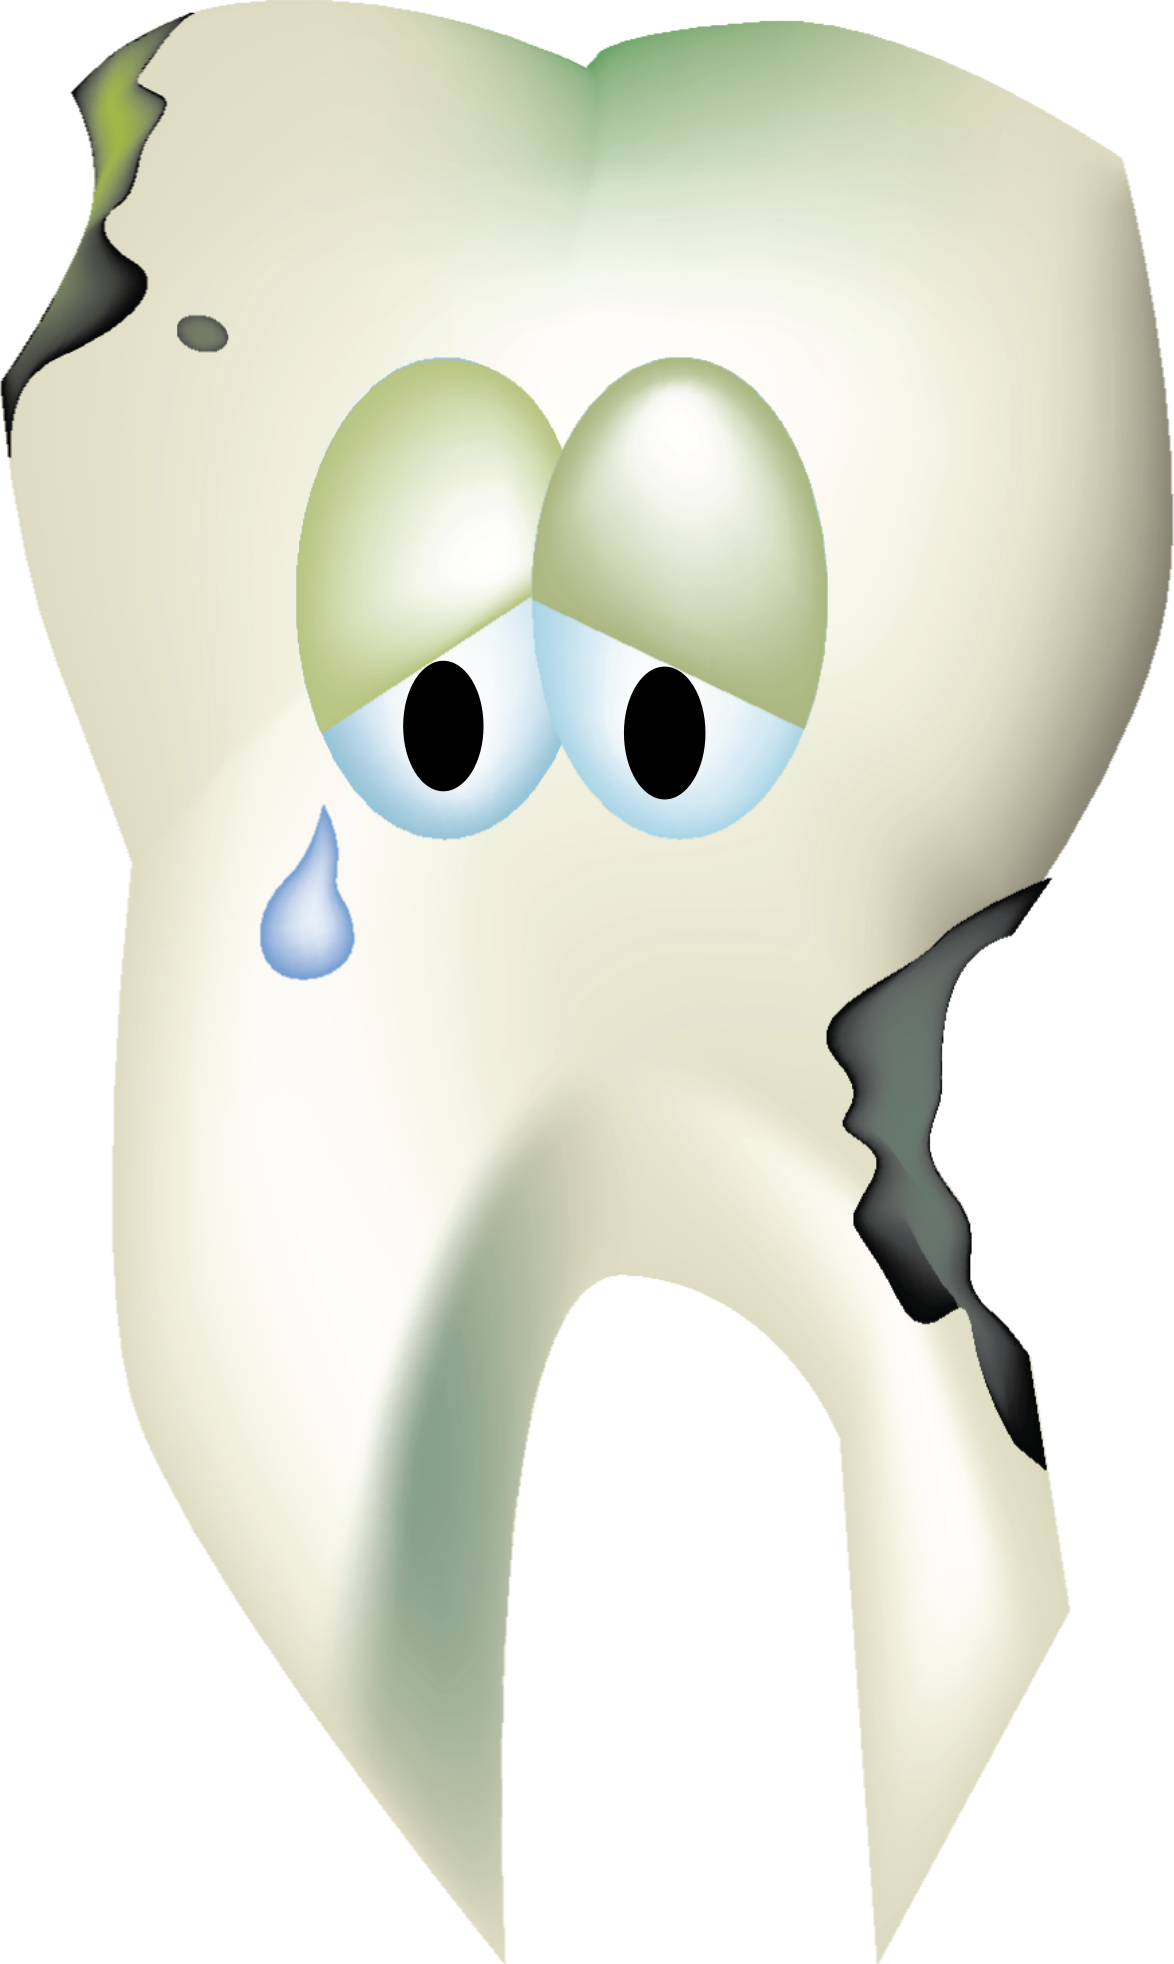 Sad Decaying Tooth by snoopingasusual